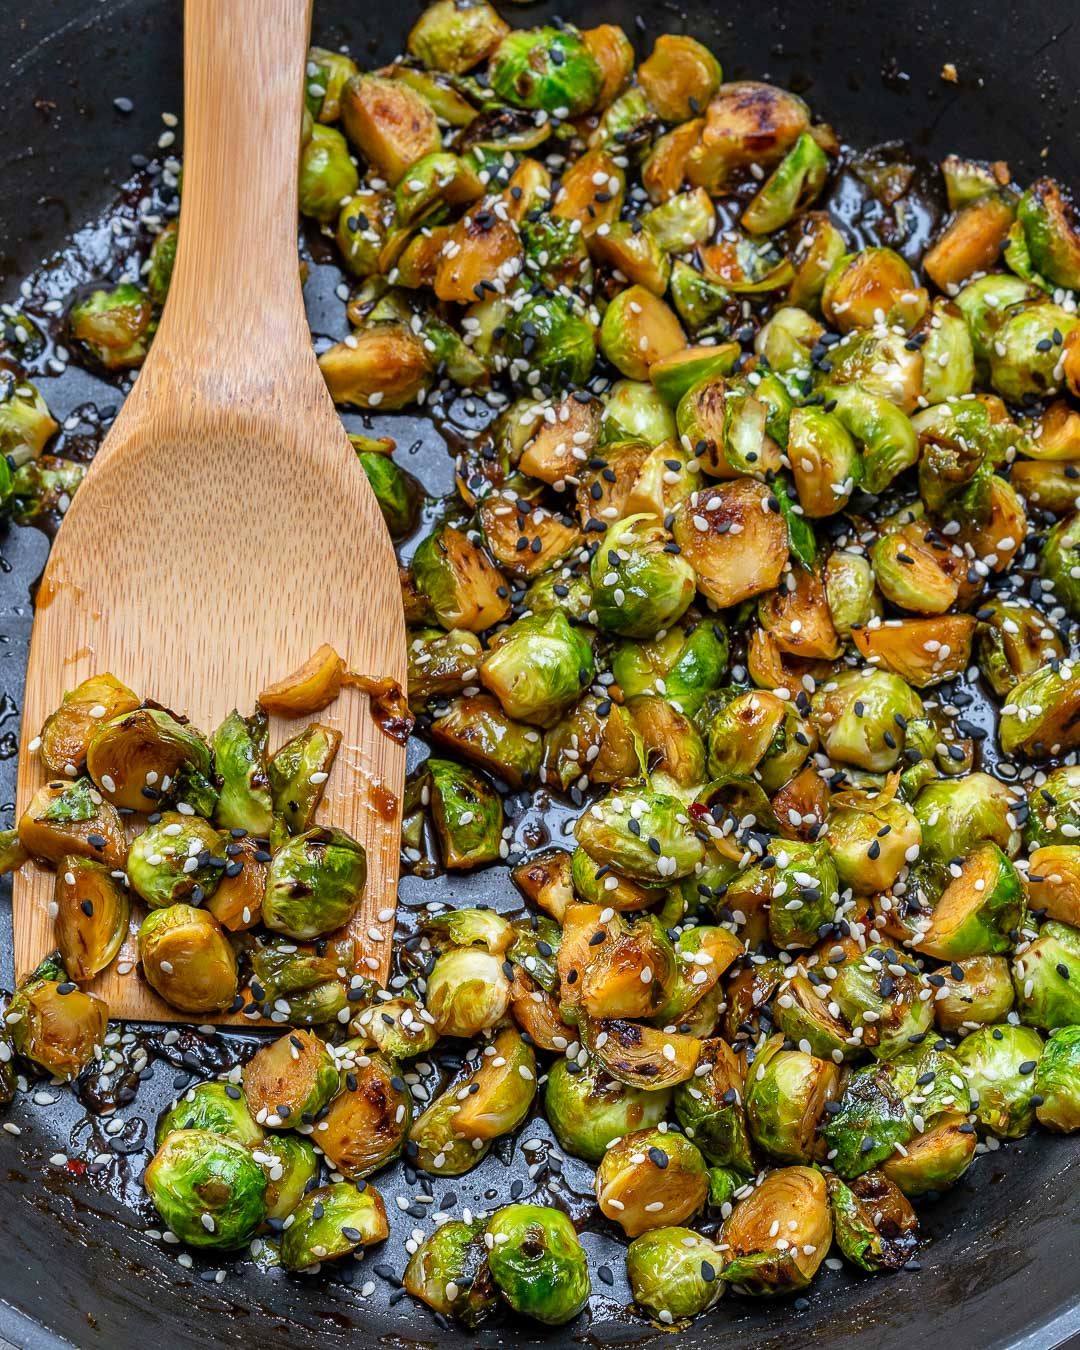 Stir-fried Brussels Sprouts Clean Food Recipe